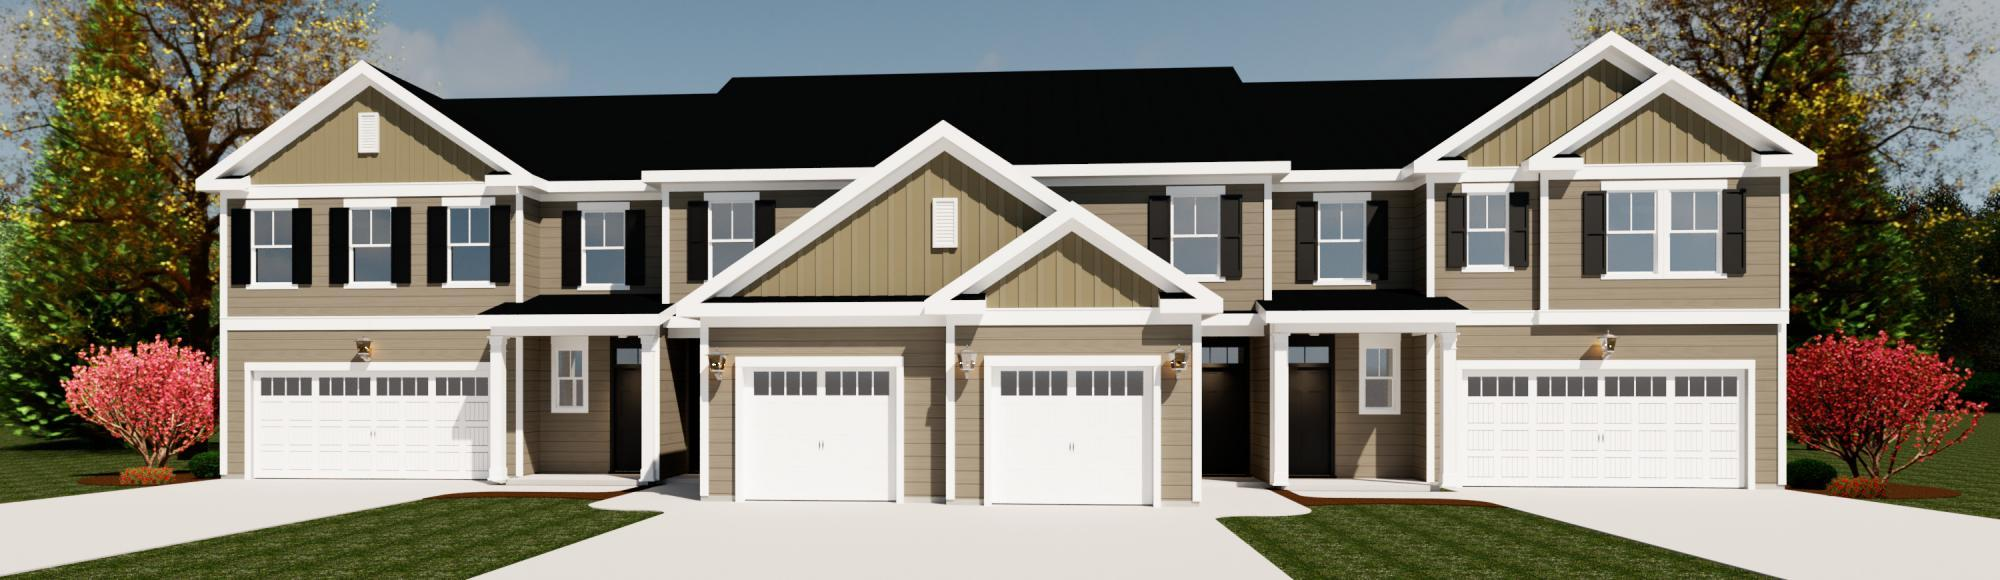 Exterior featured in the Emerson 2 Bedroom Townhome By Ivey Residential in Augusta, GA